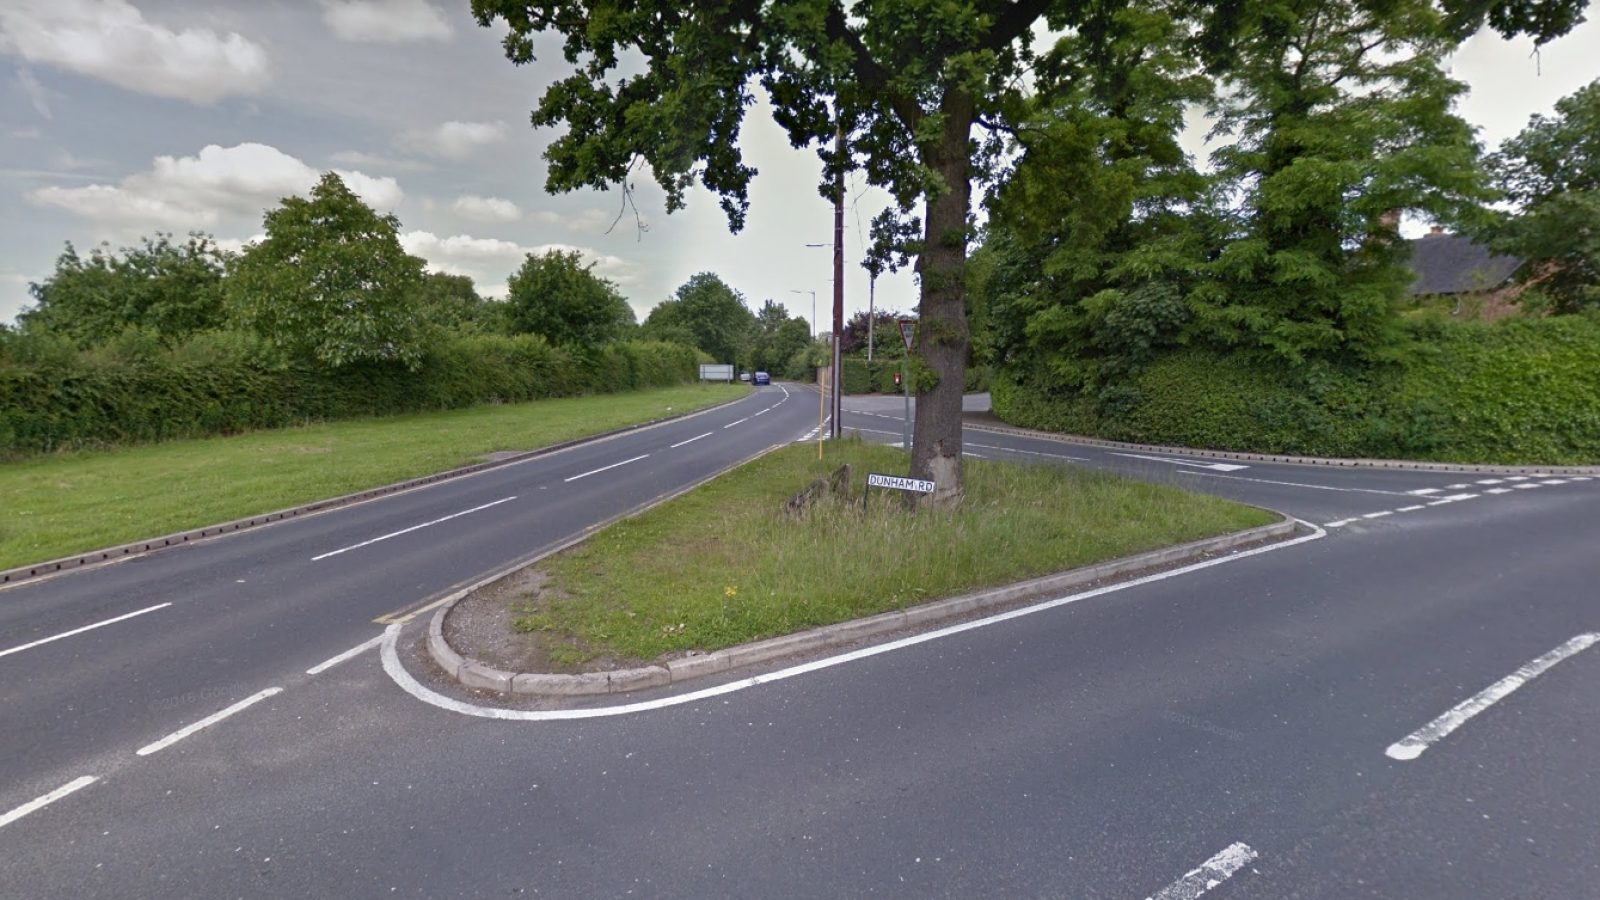 The Dunham Road junction where the collision happened